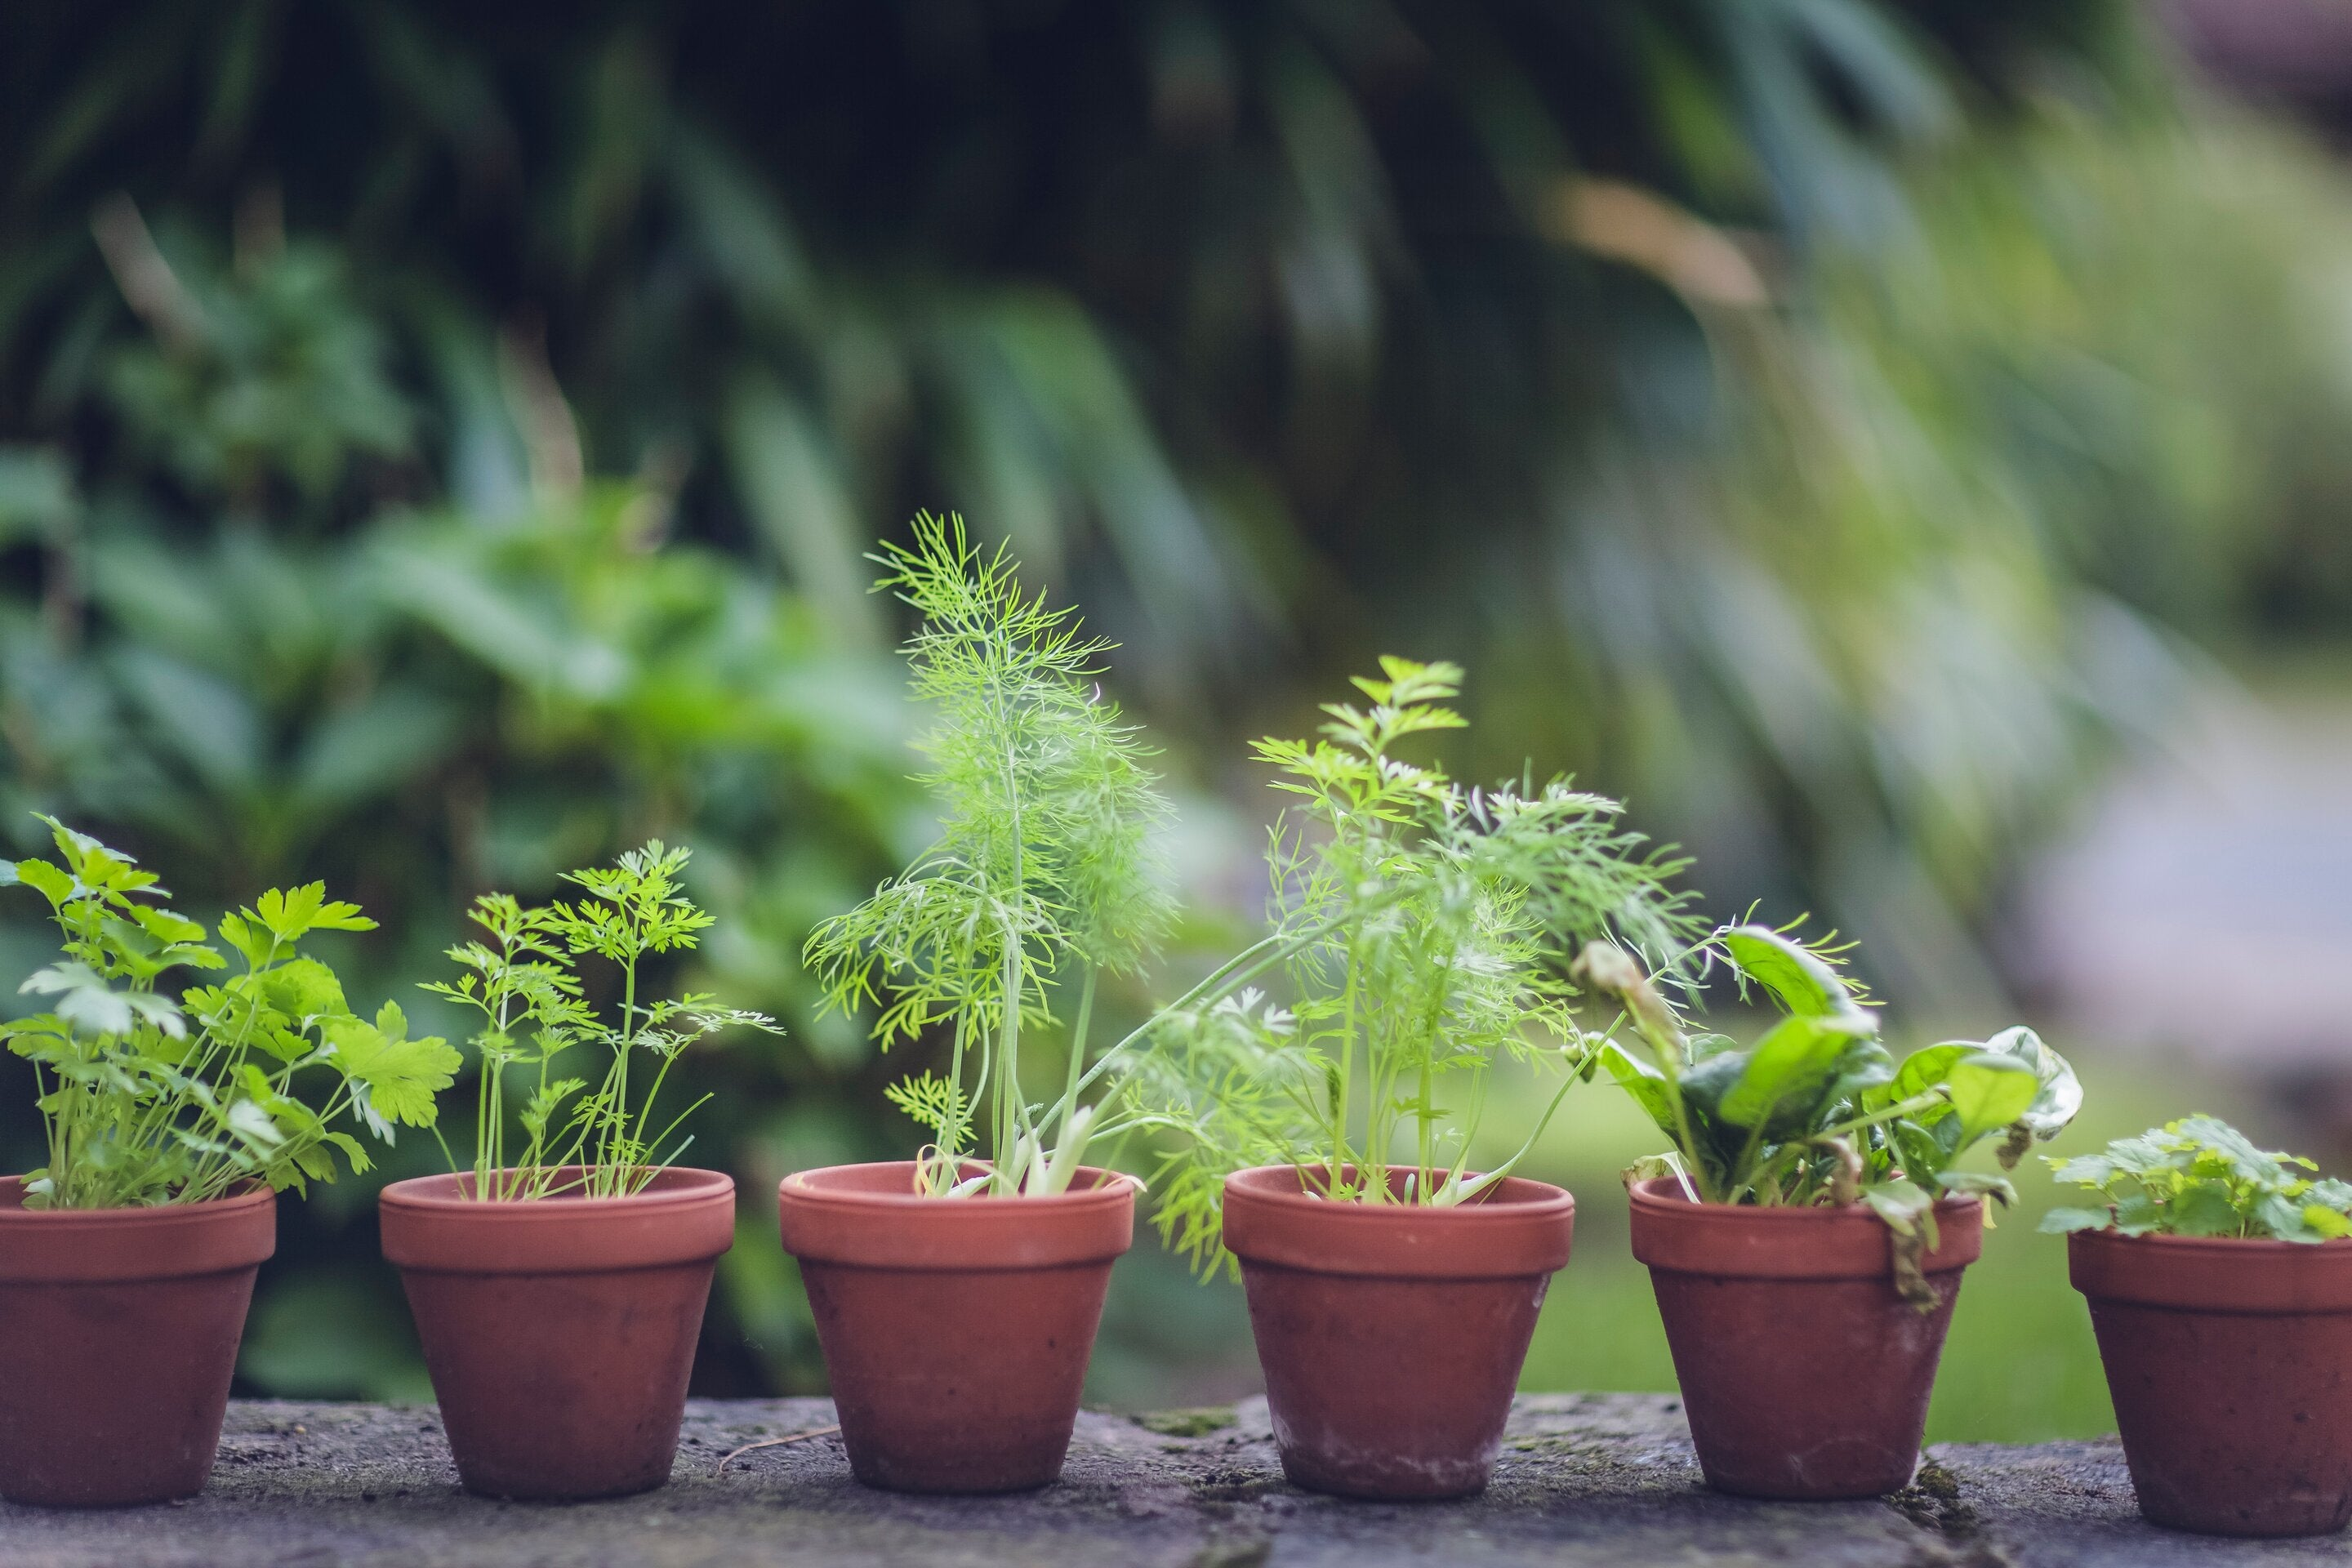 Starter plants or young plants are quicker and better to grow than seeds